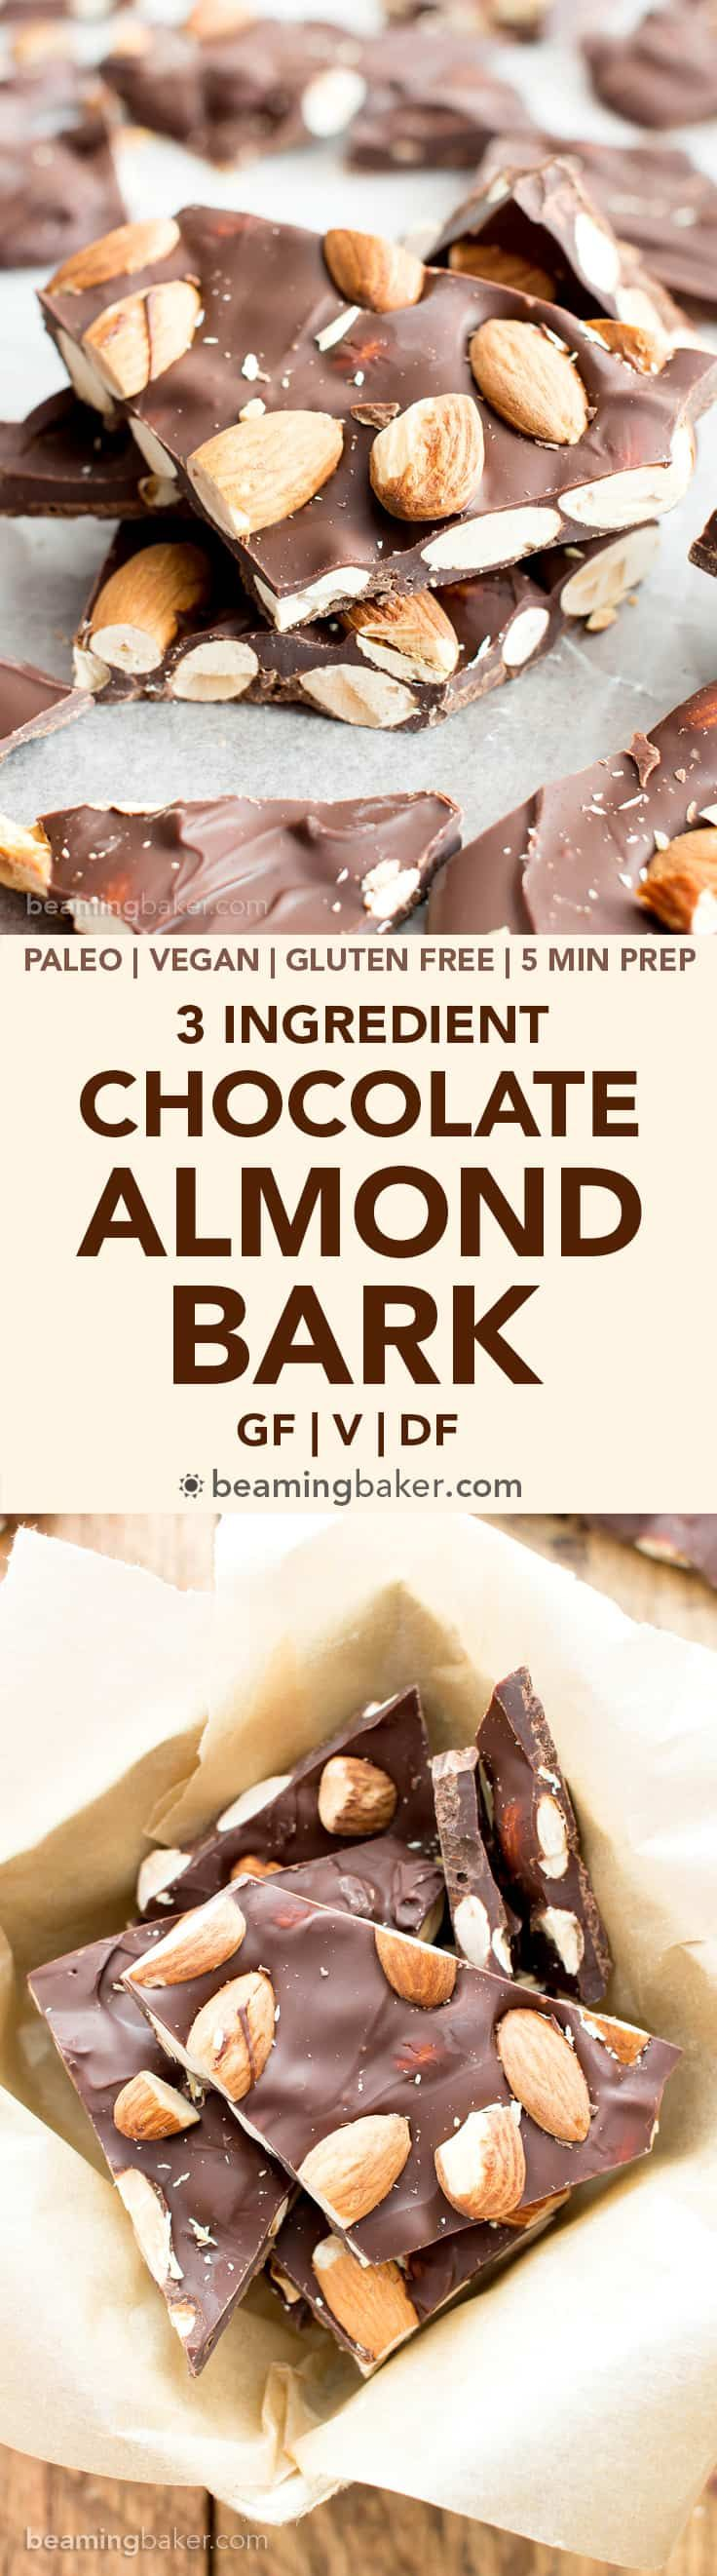 3 Ingredient Chocolate Almond Bark Recipe (V, GF): a fun recipe for thick pieces of indulgent chocolate bark perfectly packed with almonds. #Vegan #Paleo #GlutenFree #DairyFree #Dessert #Candy | Recipe on BeamingBaker.com